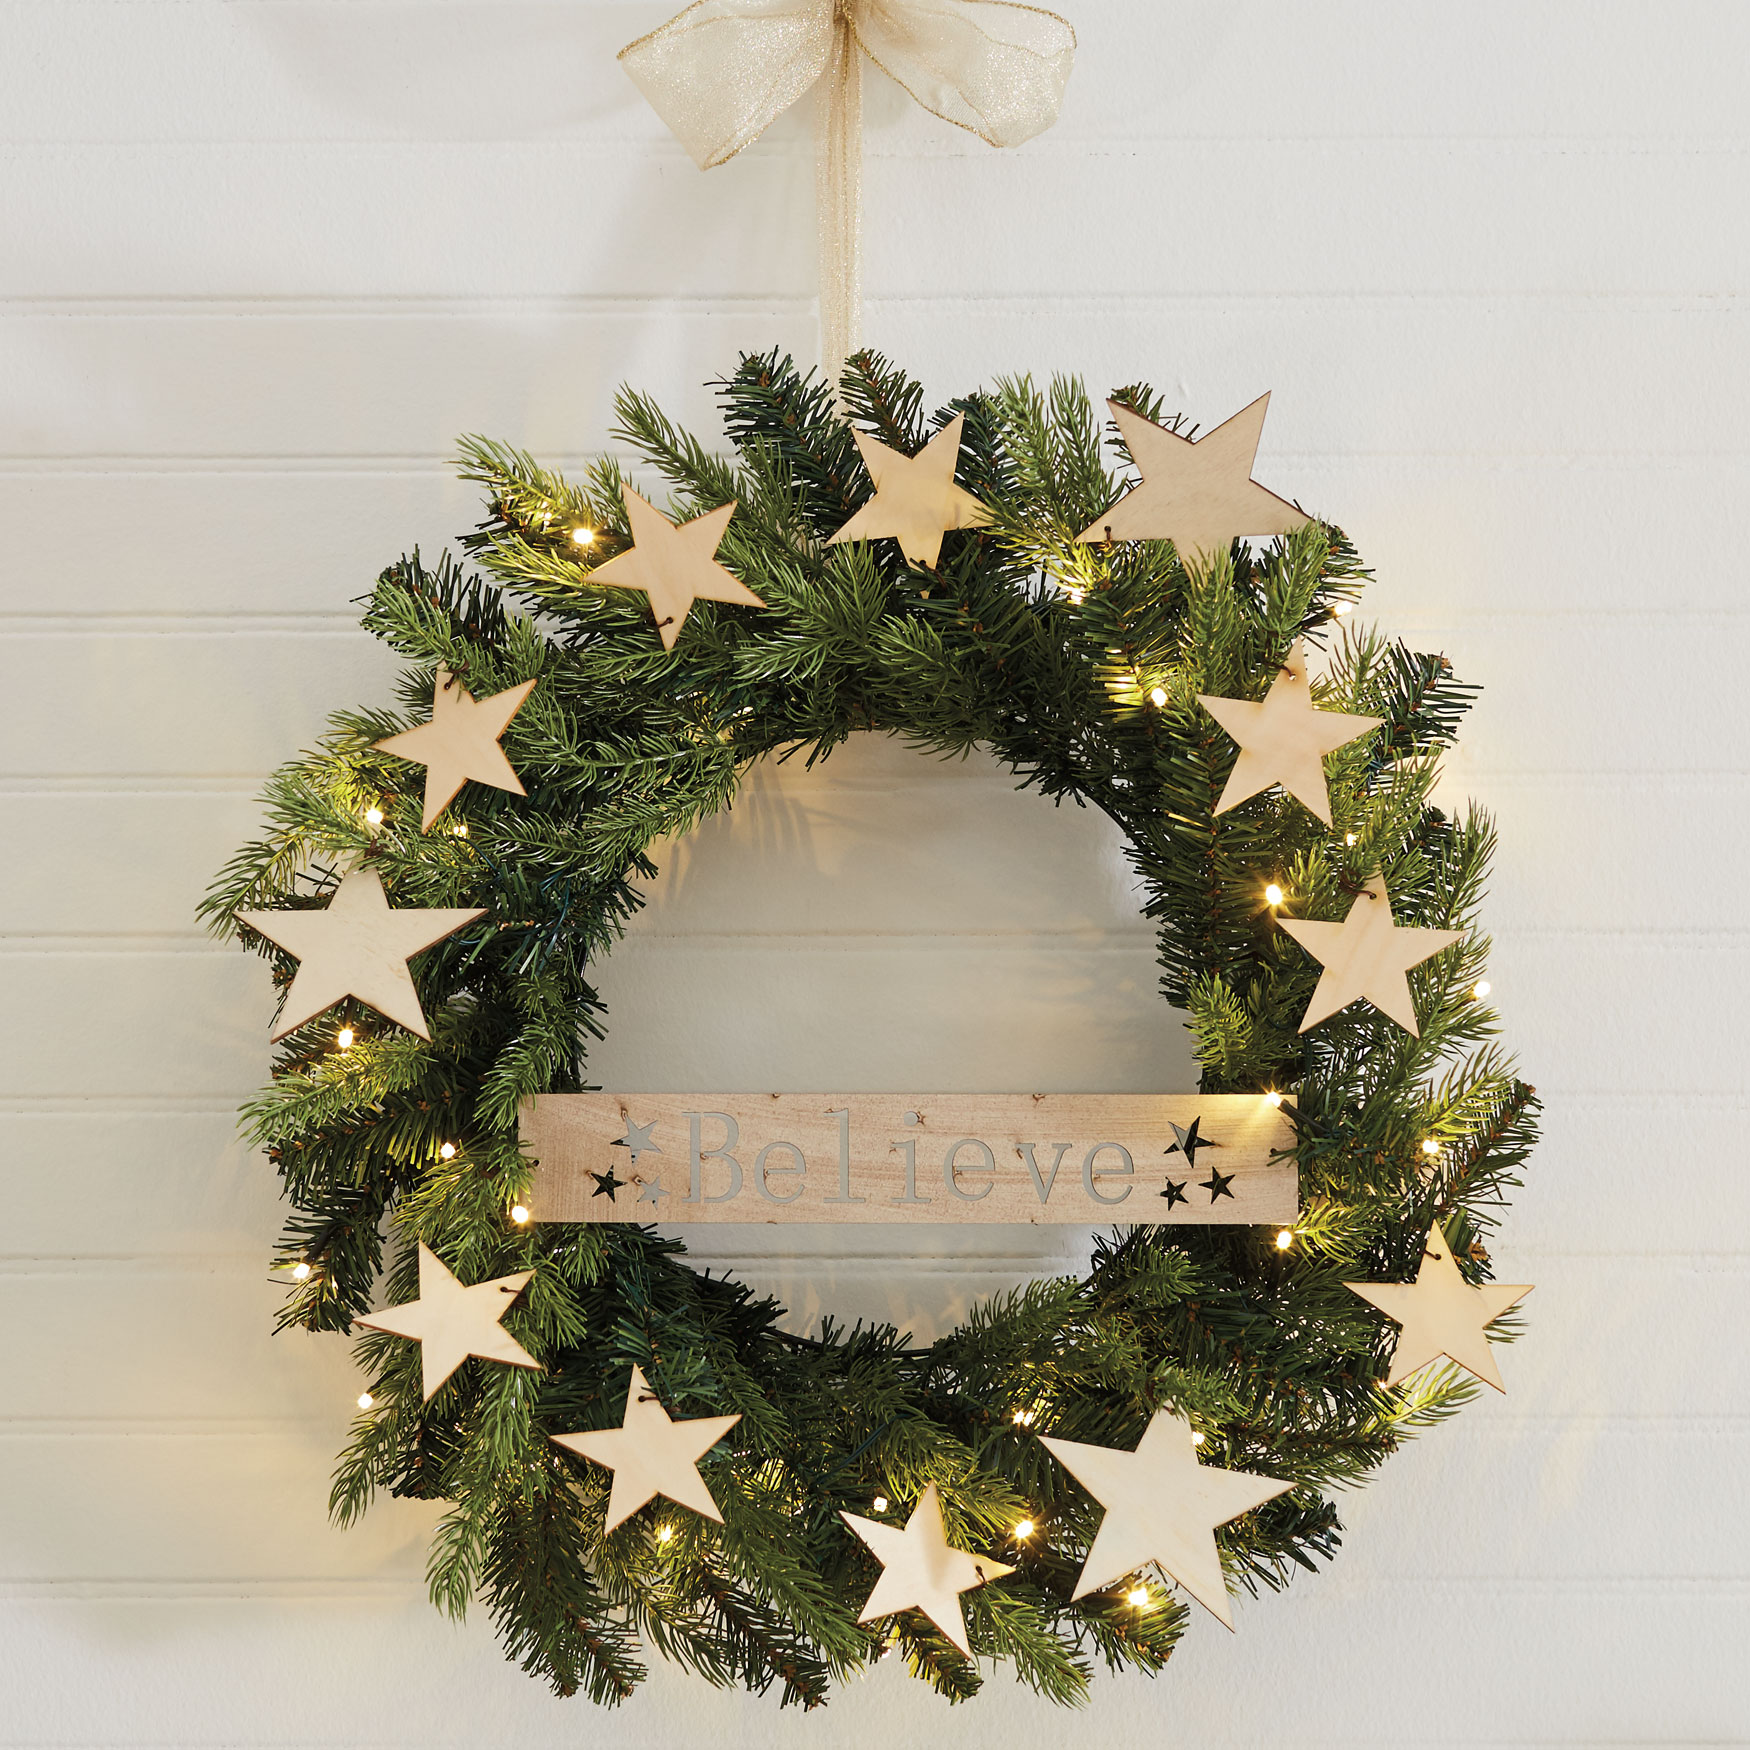 Believe Holiday Wreath, GREEN